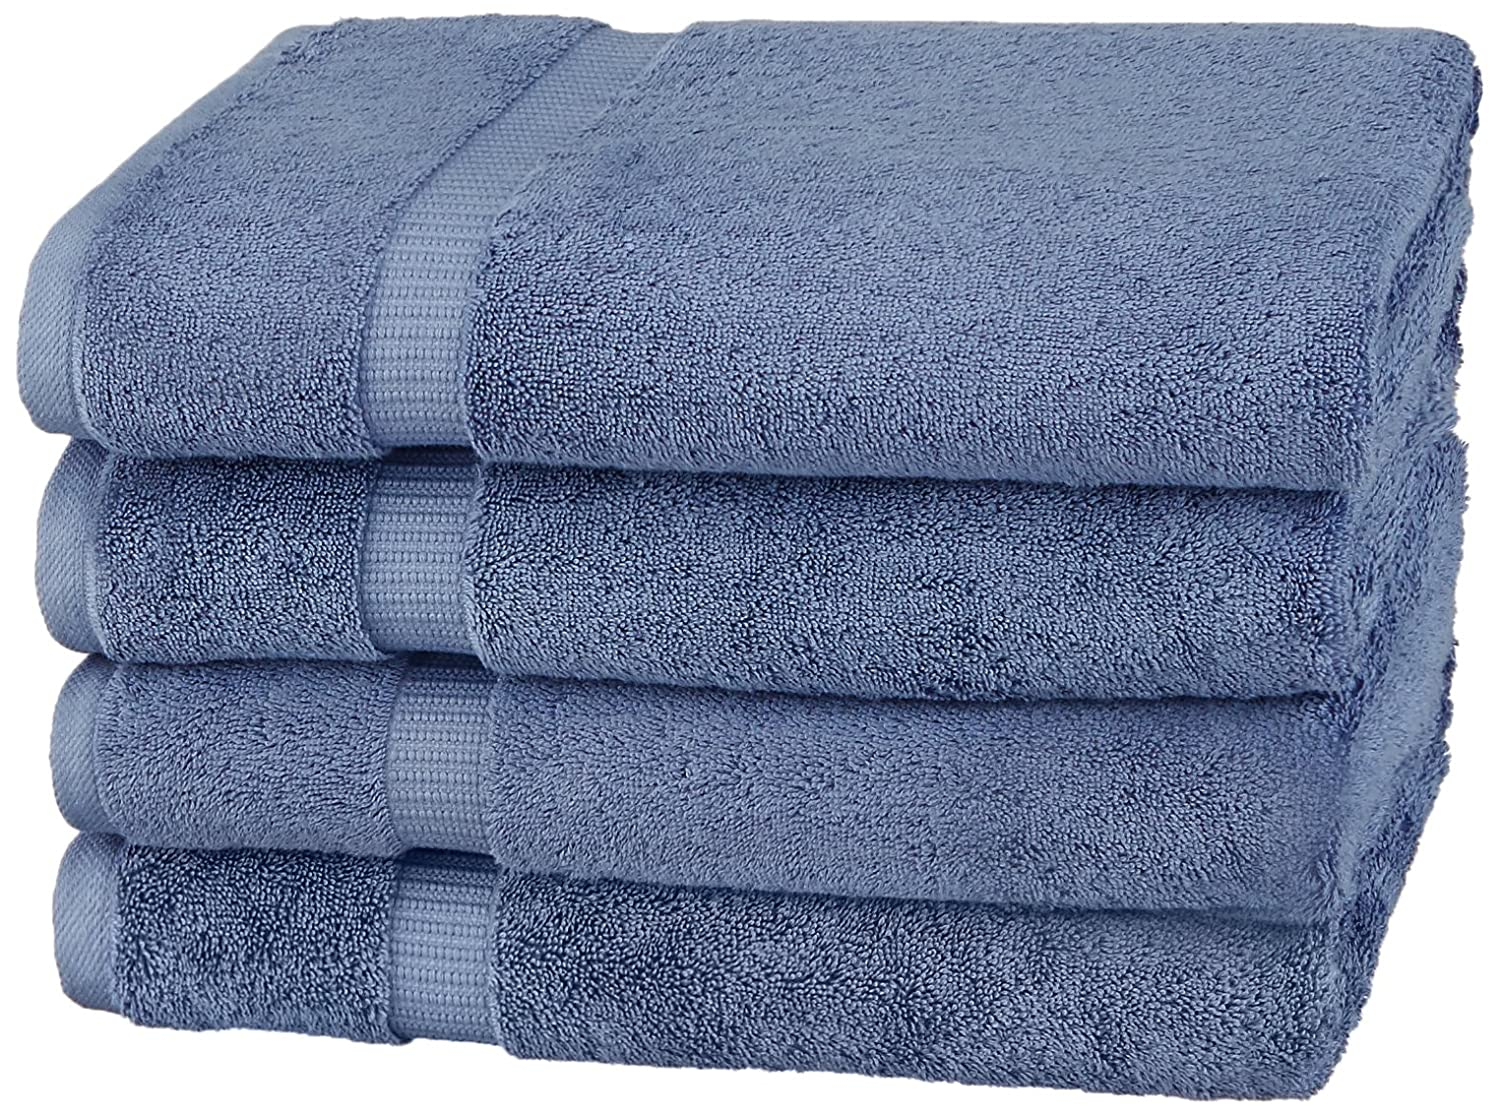 Pinzon Organic Cotton Bath Towels (4 Pack), White PZOR-WE-4PK